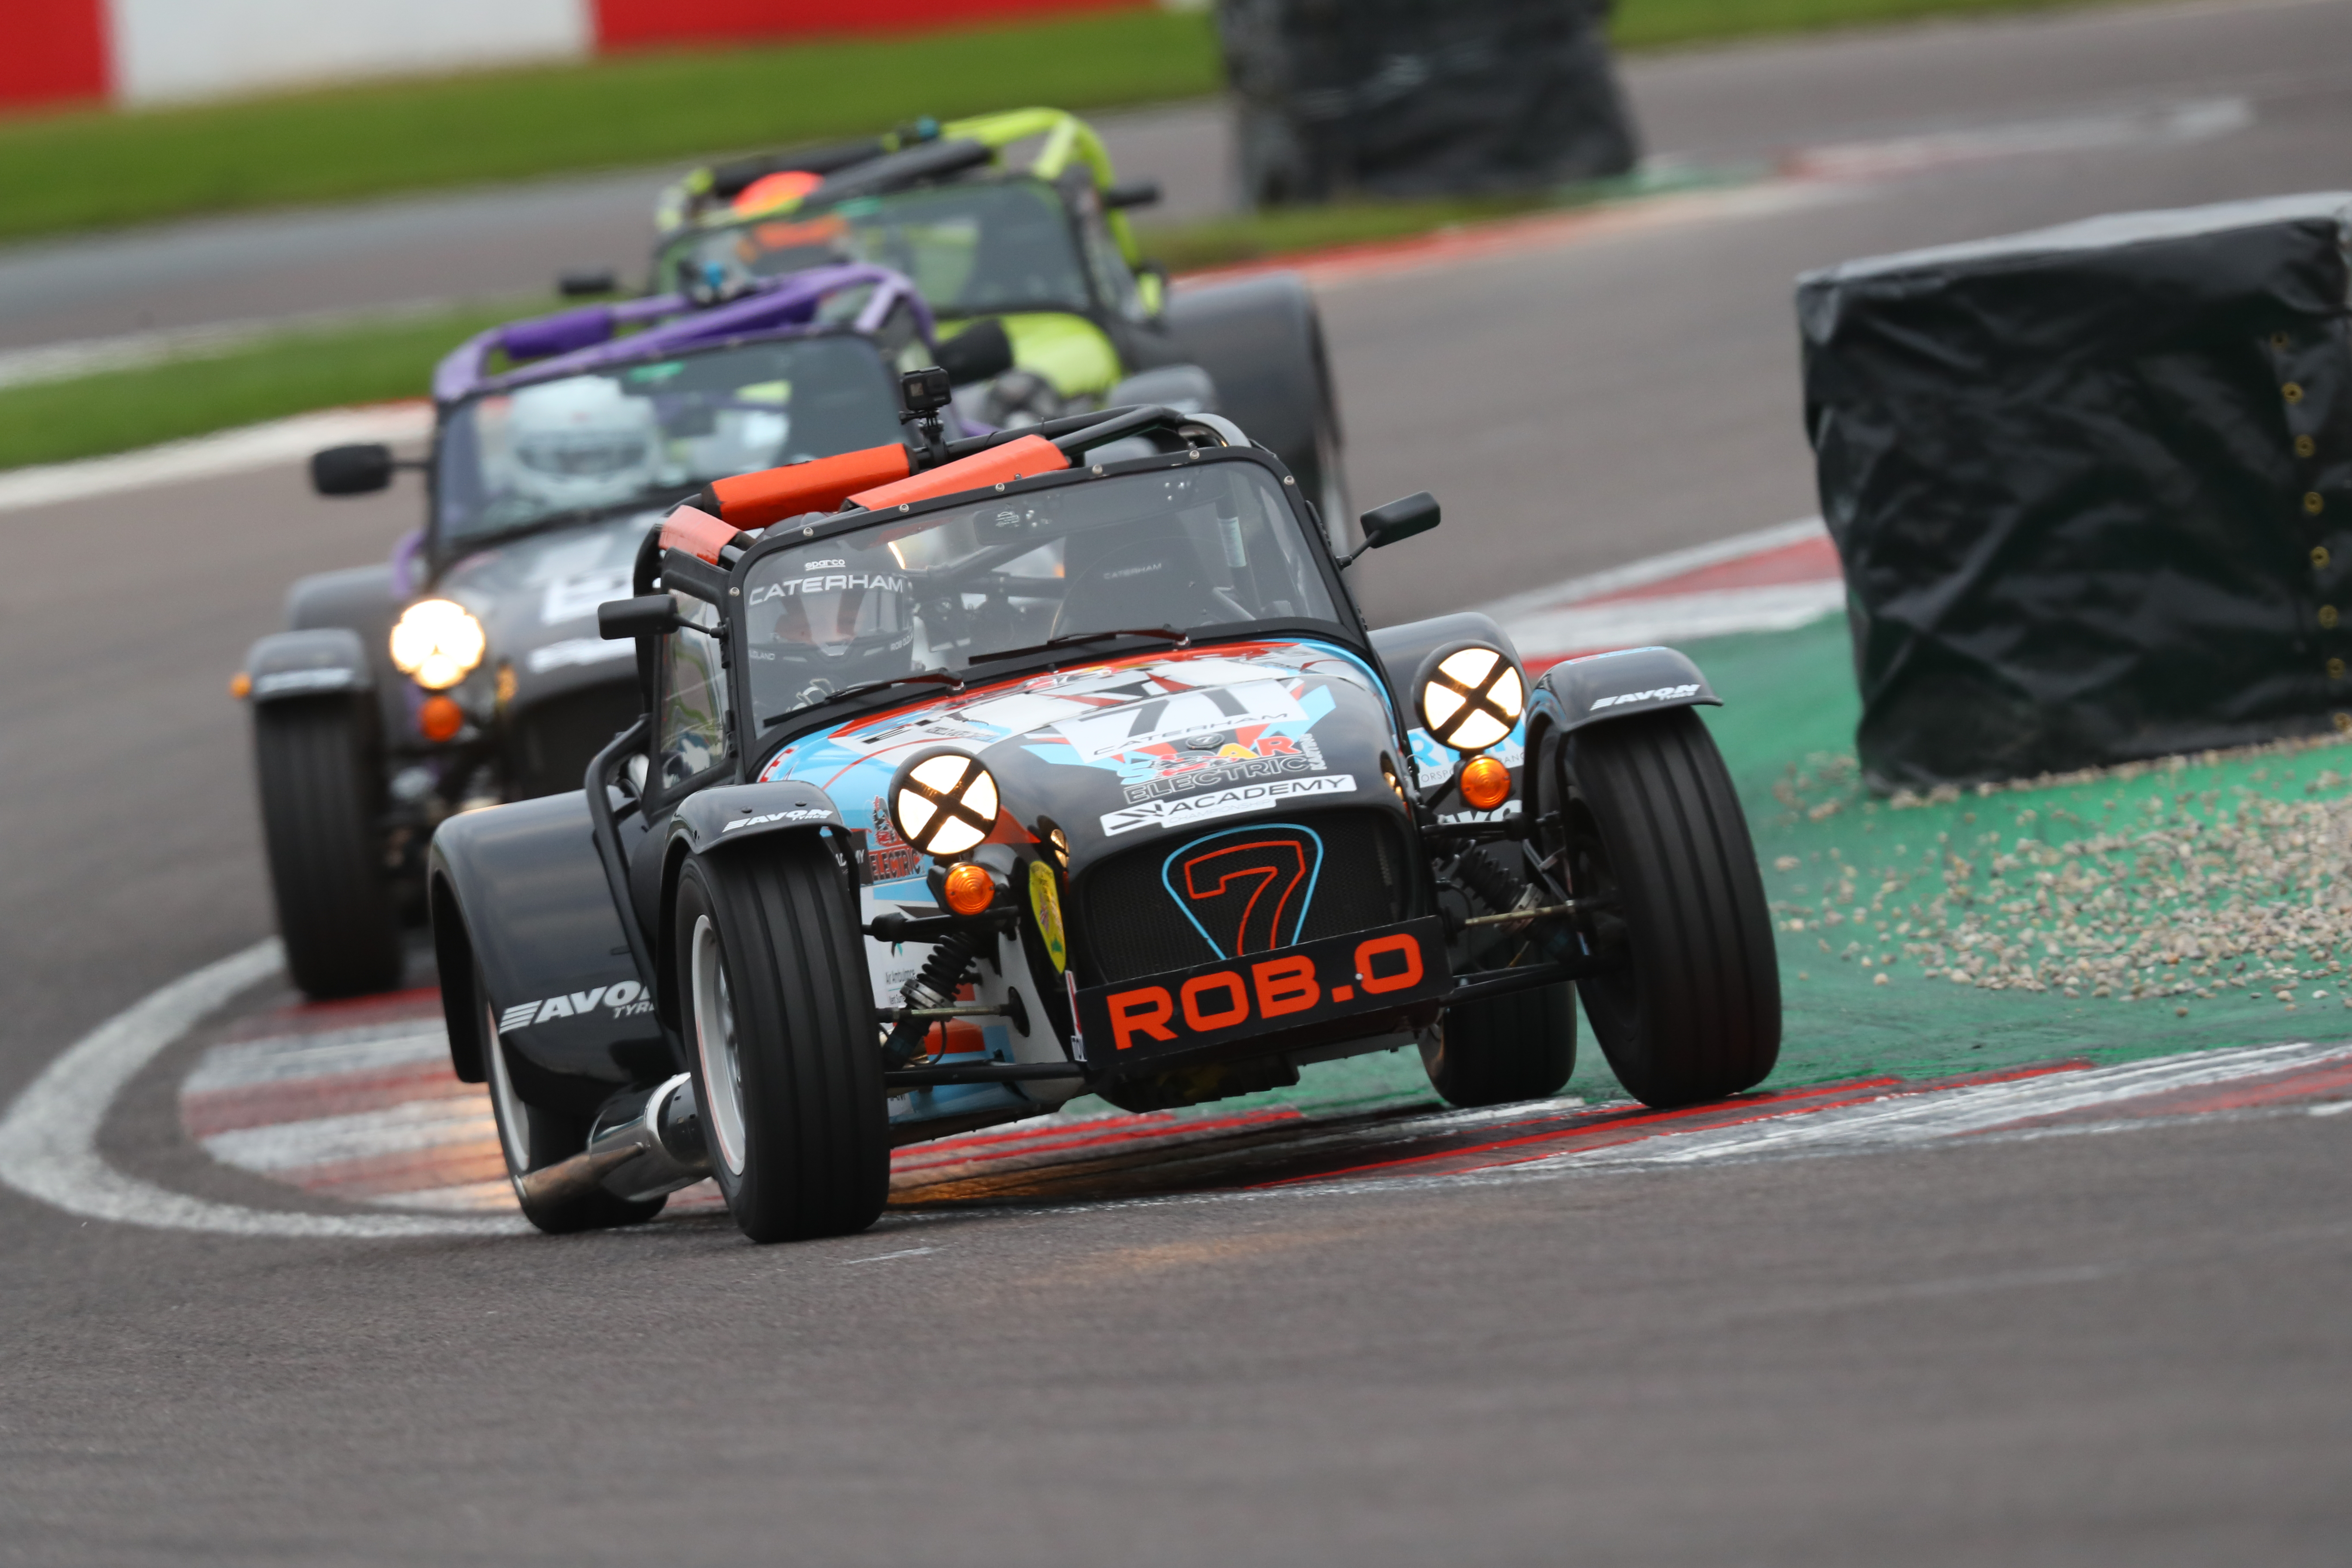 GUEST BLOG: ON TRACK FOR THE ACADEMY WITH ROB OLDLAND #11